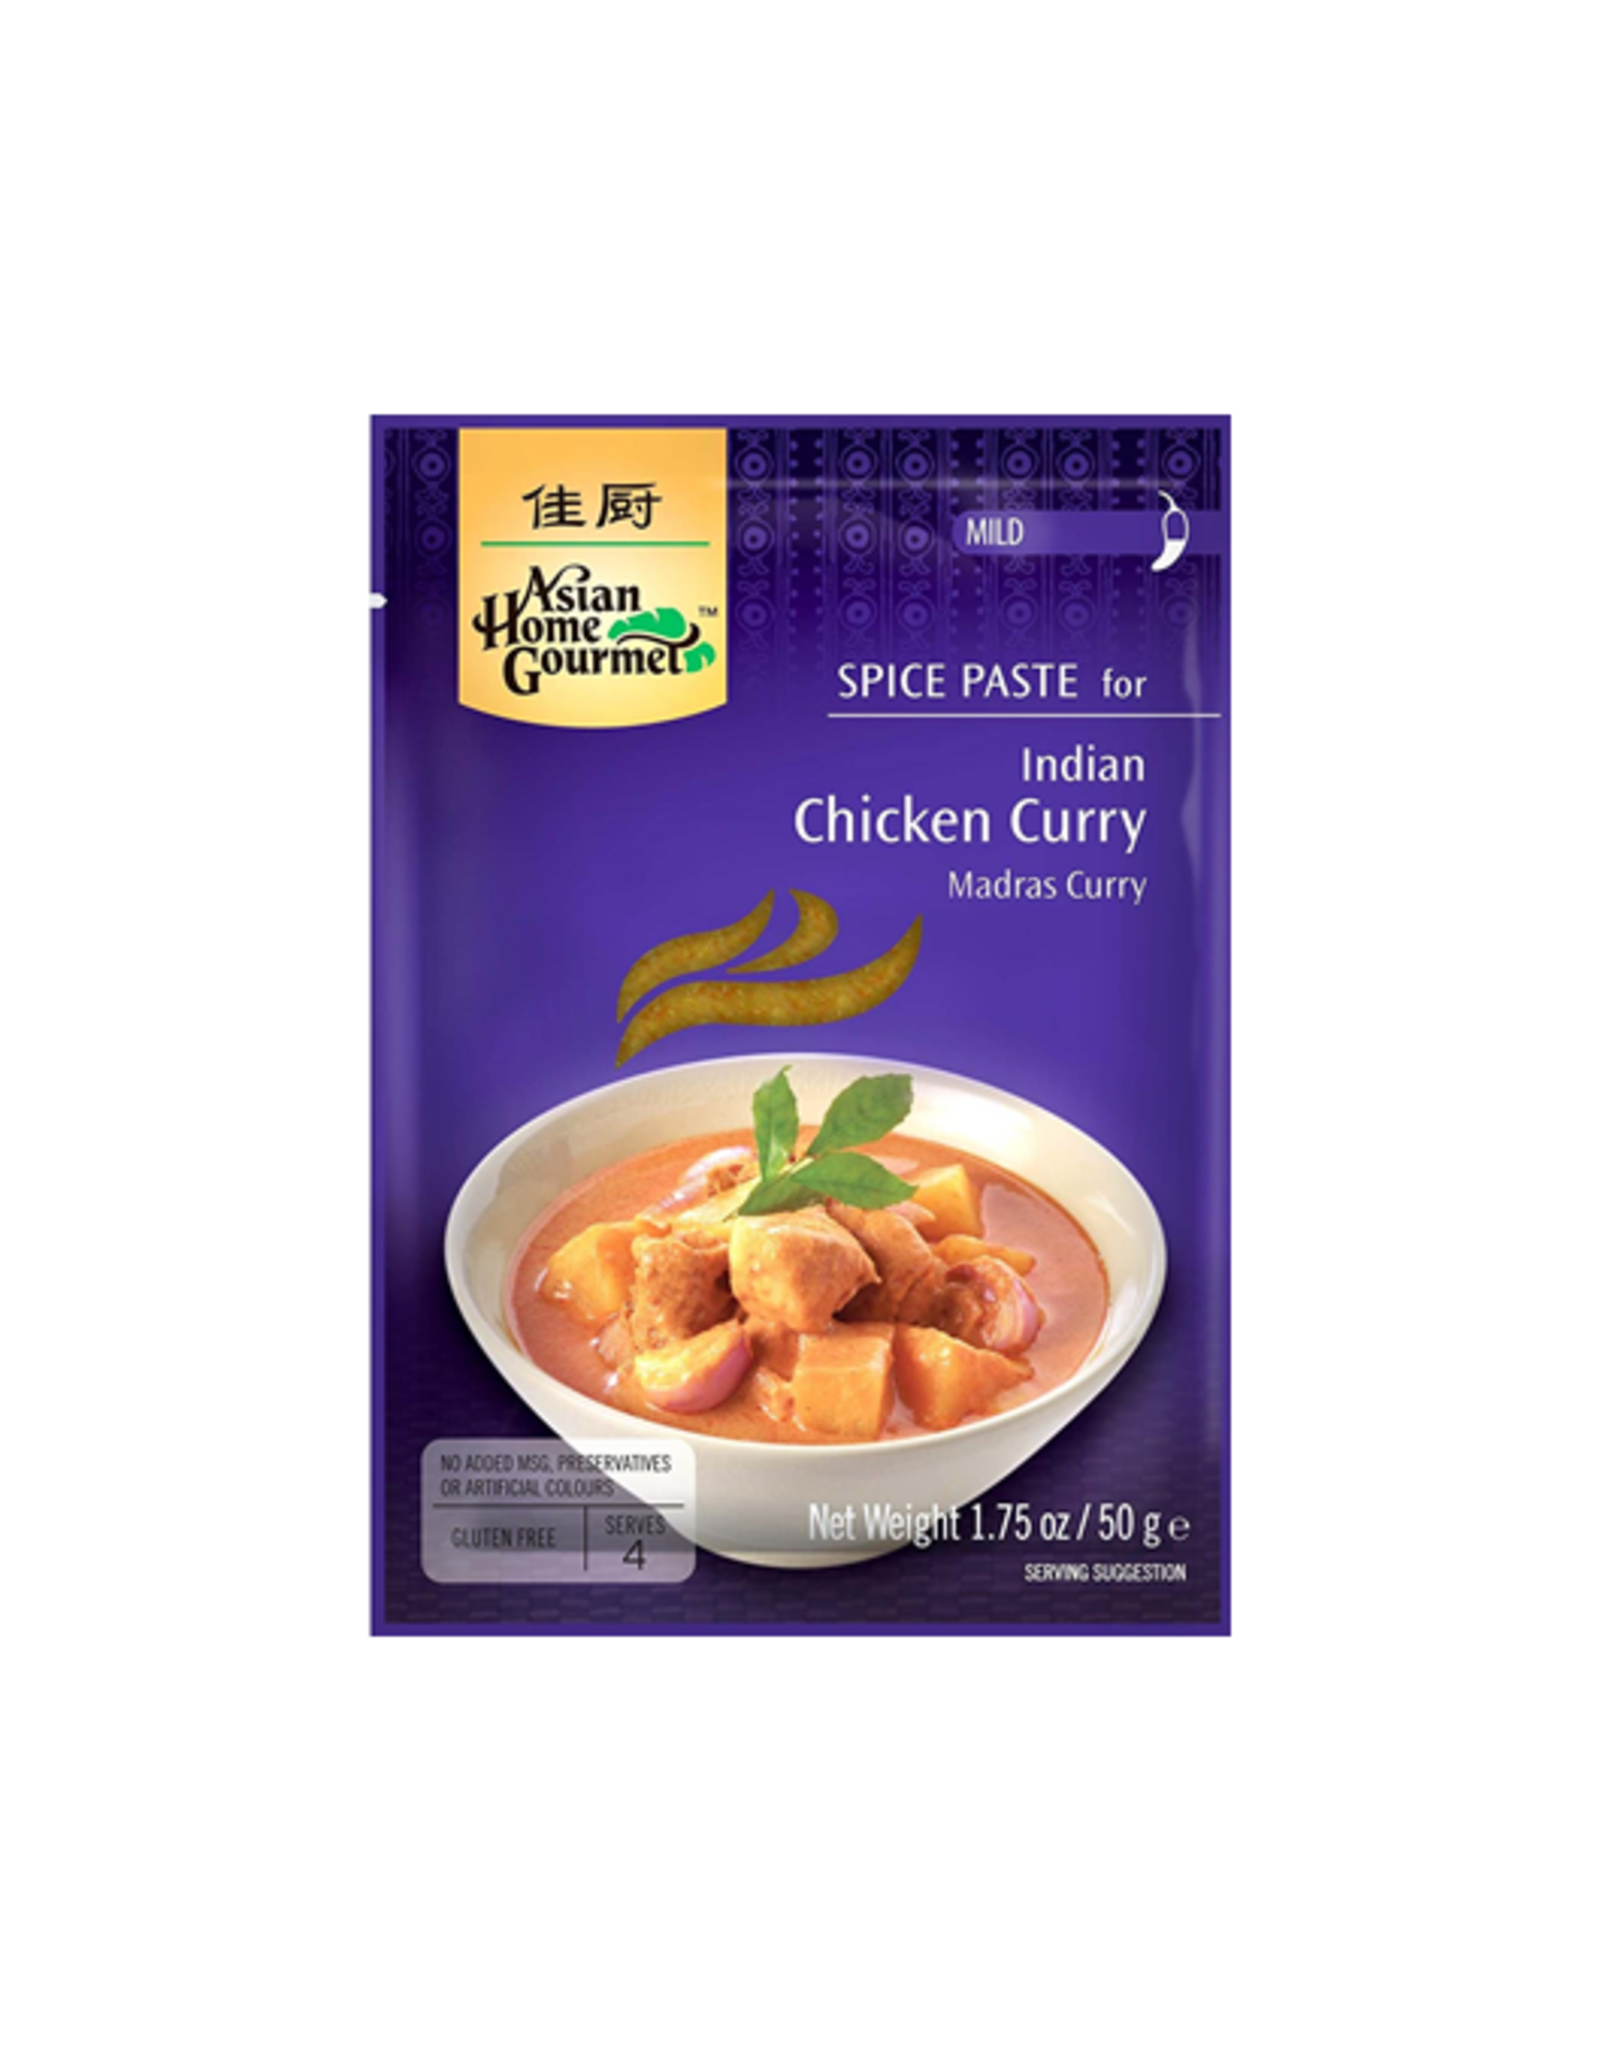 Asian Home Gourmet Indian Chicken Curry